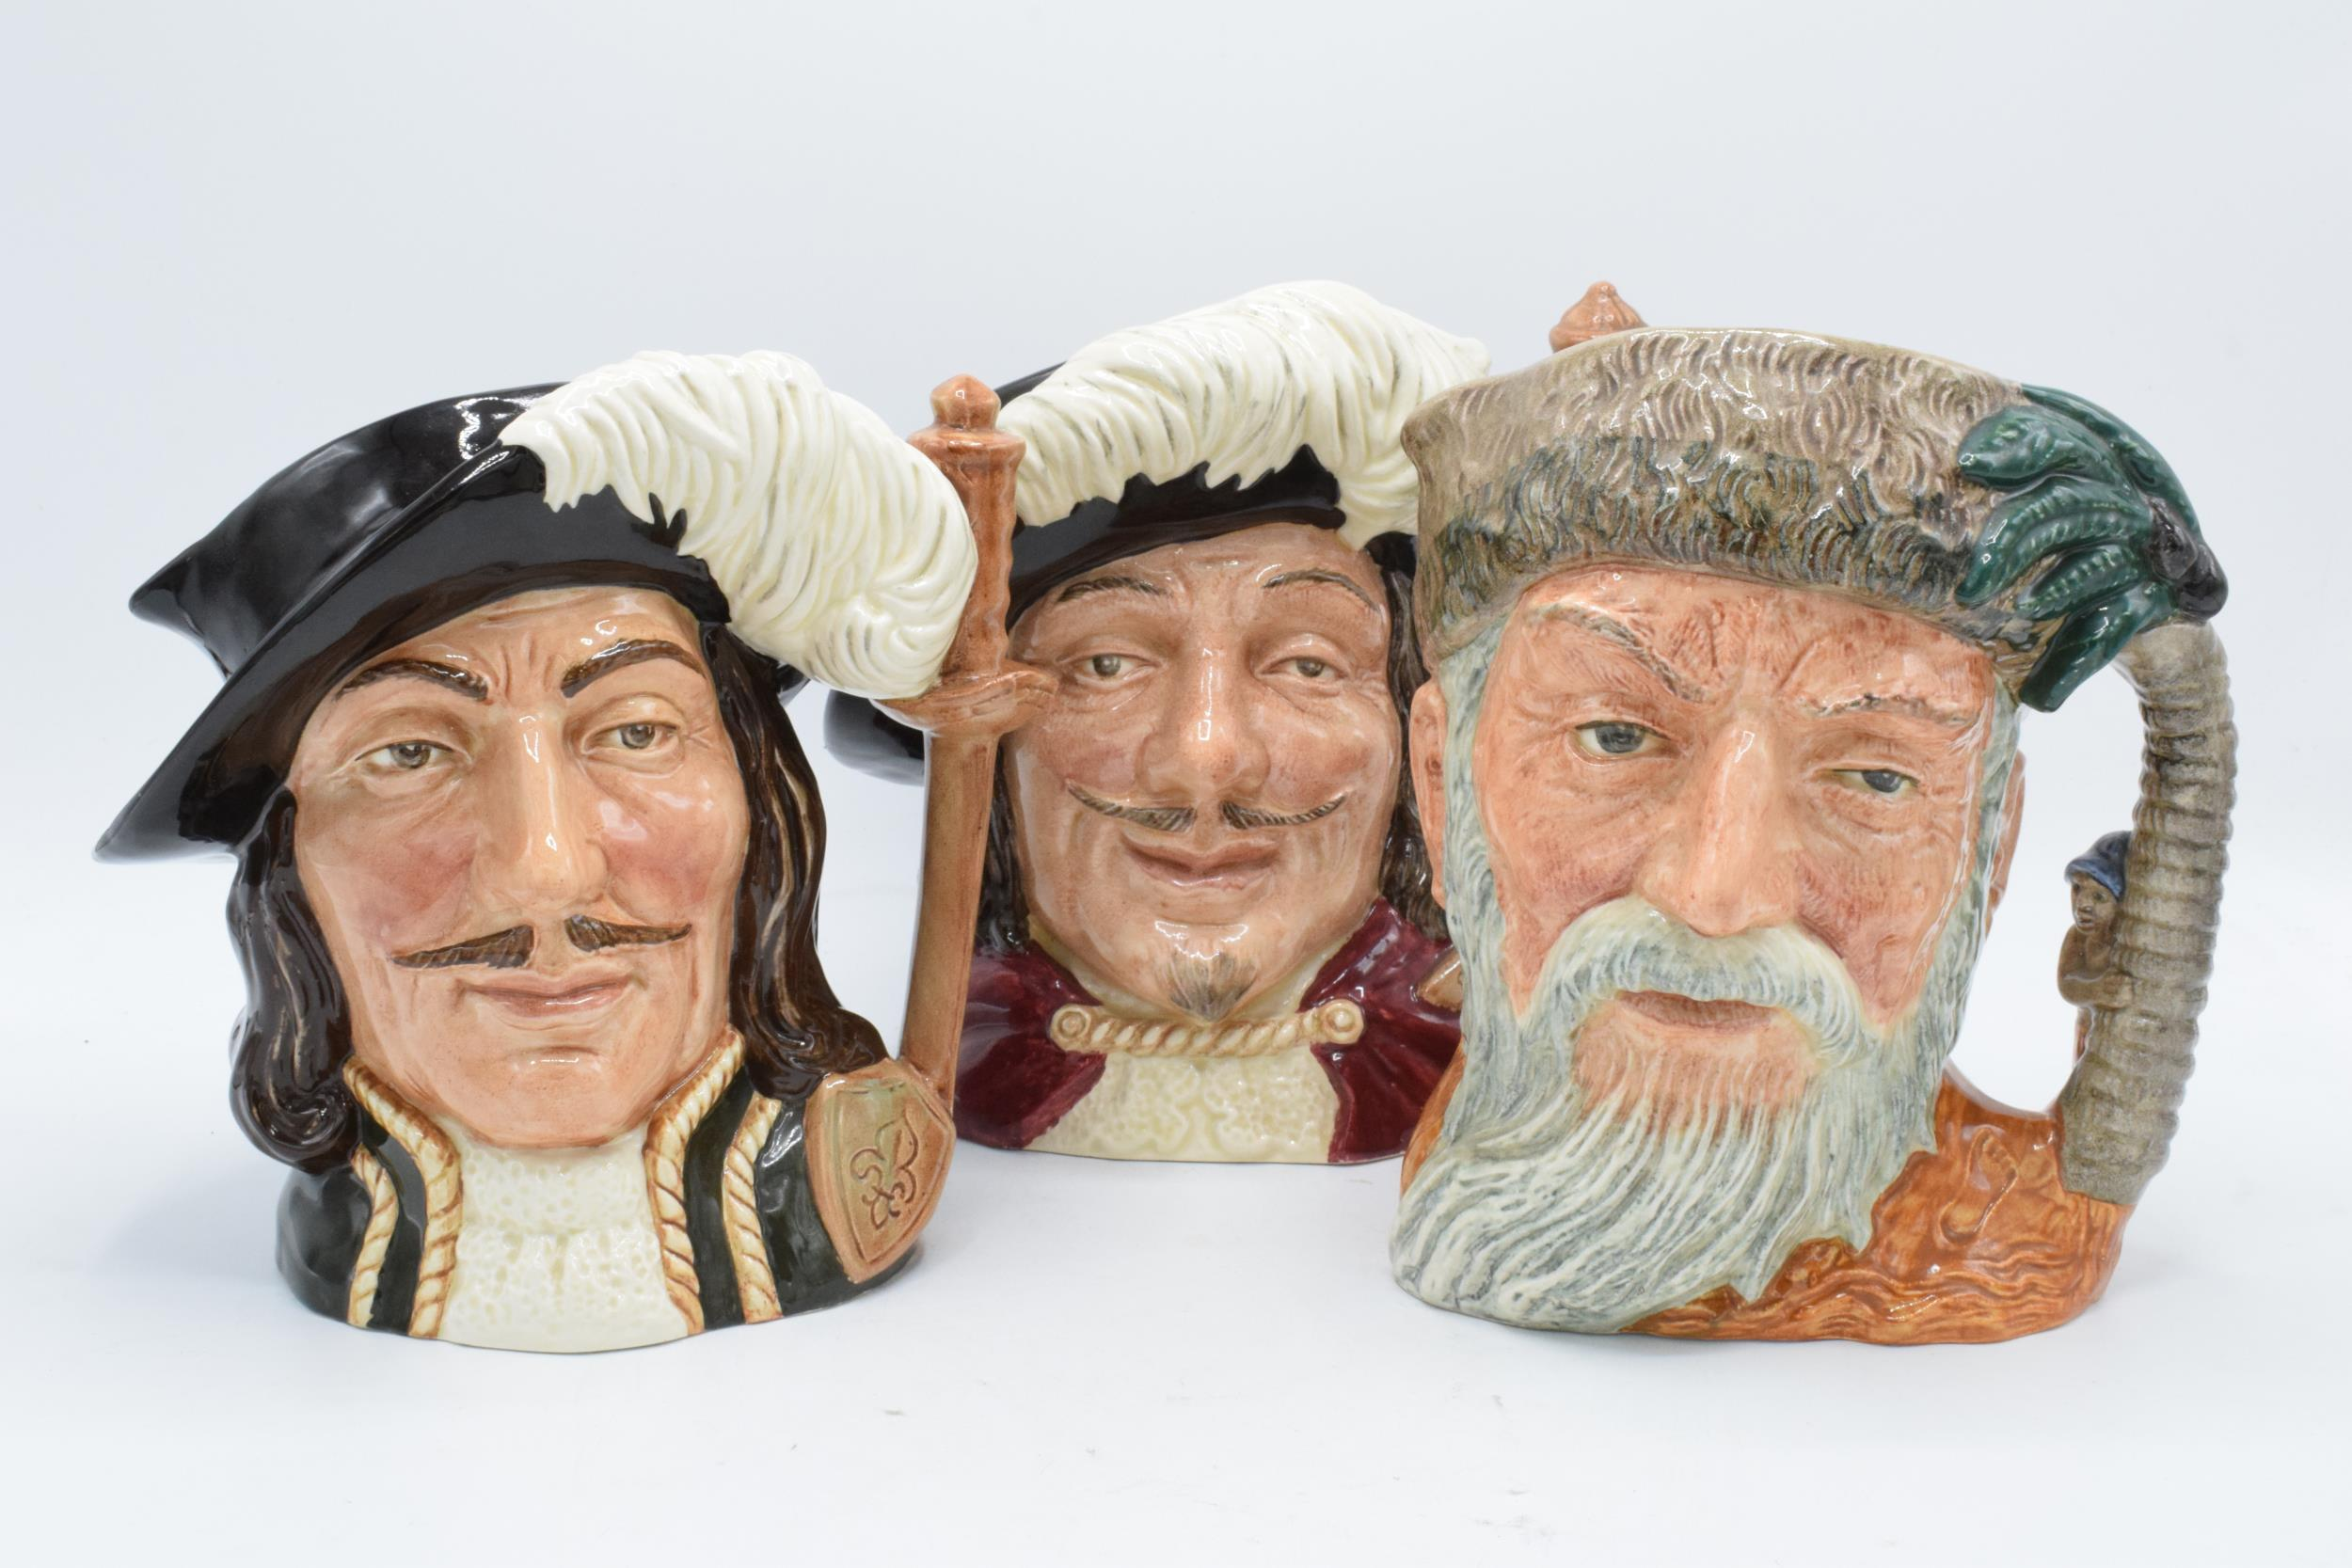 Large Royal Doulton character jugs to include Robinson Crusoe D6532, Porthos D6440 and Athos